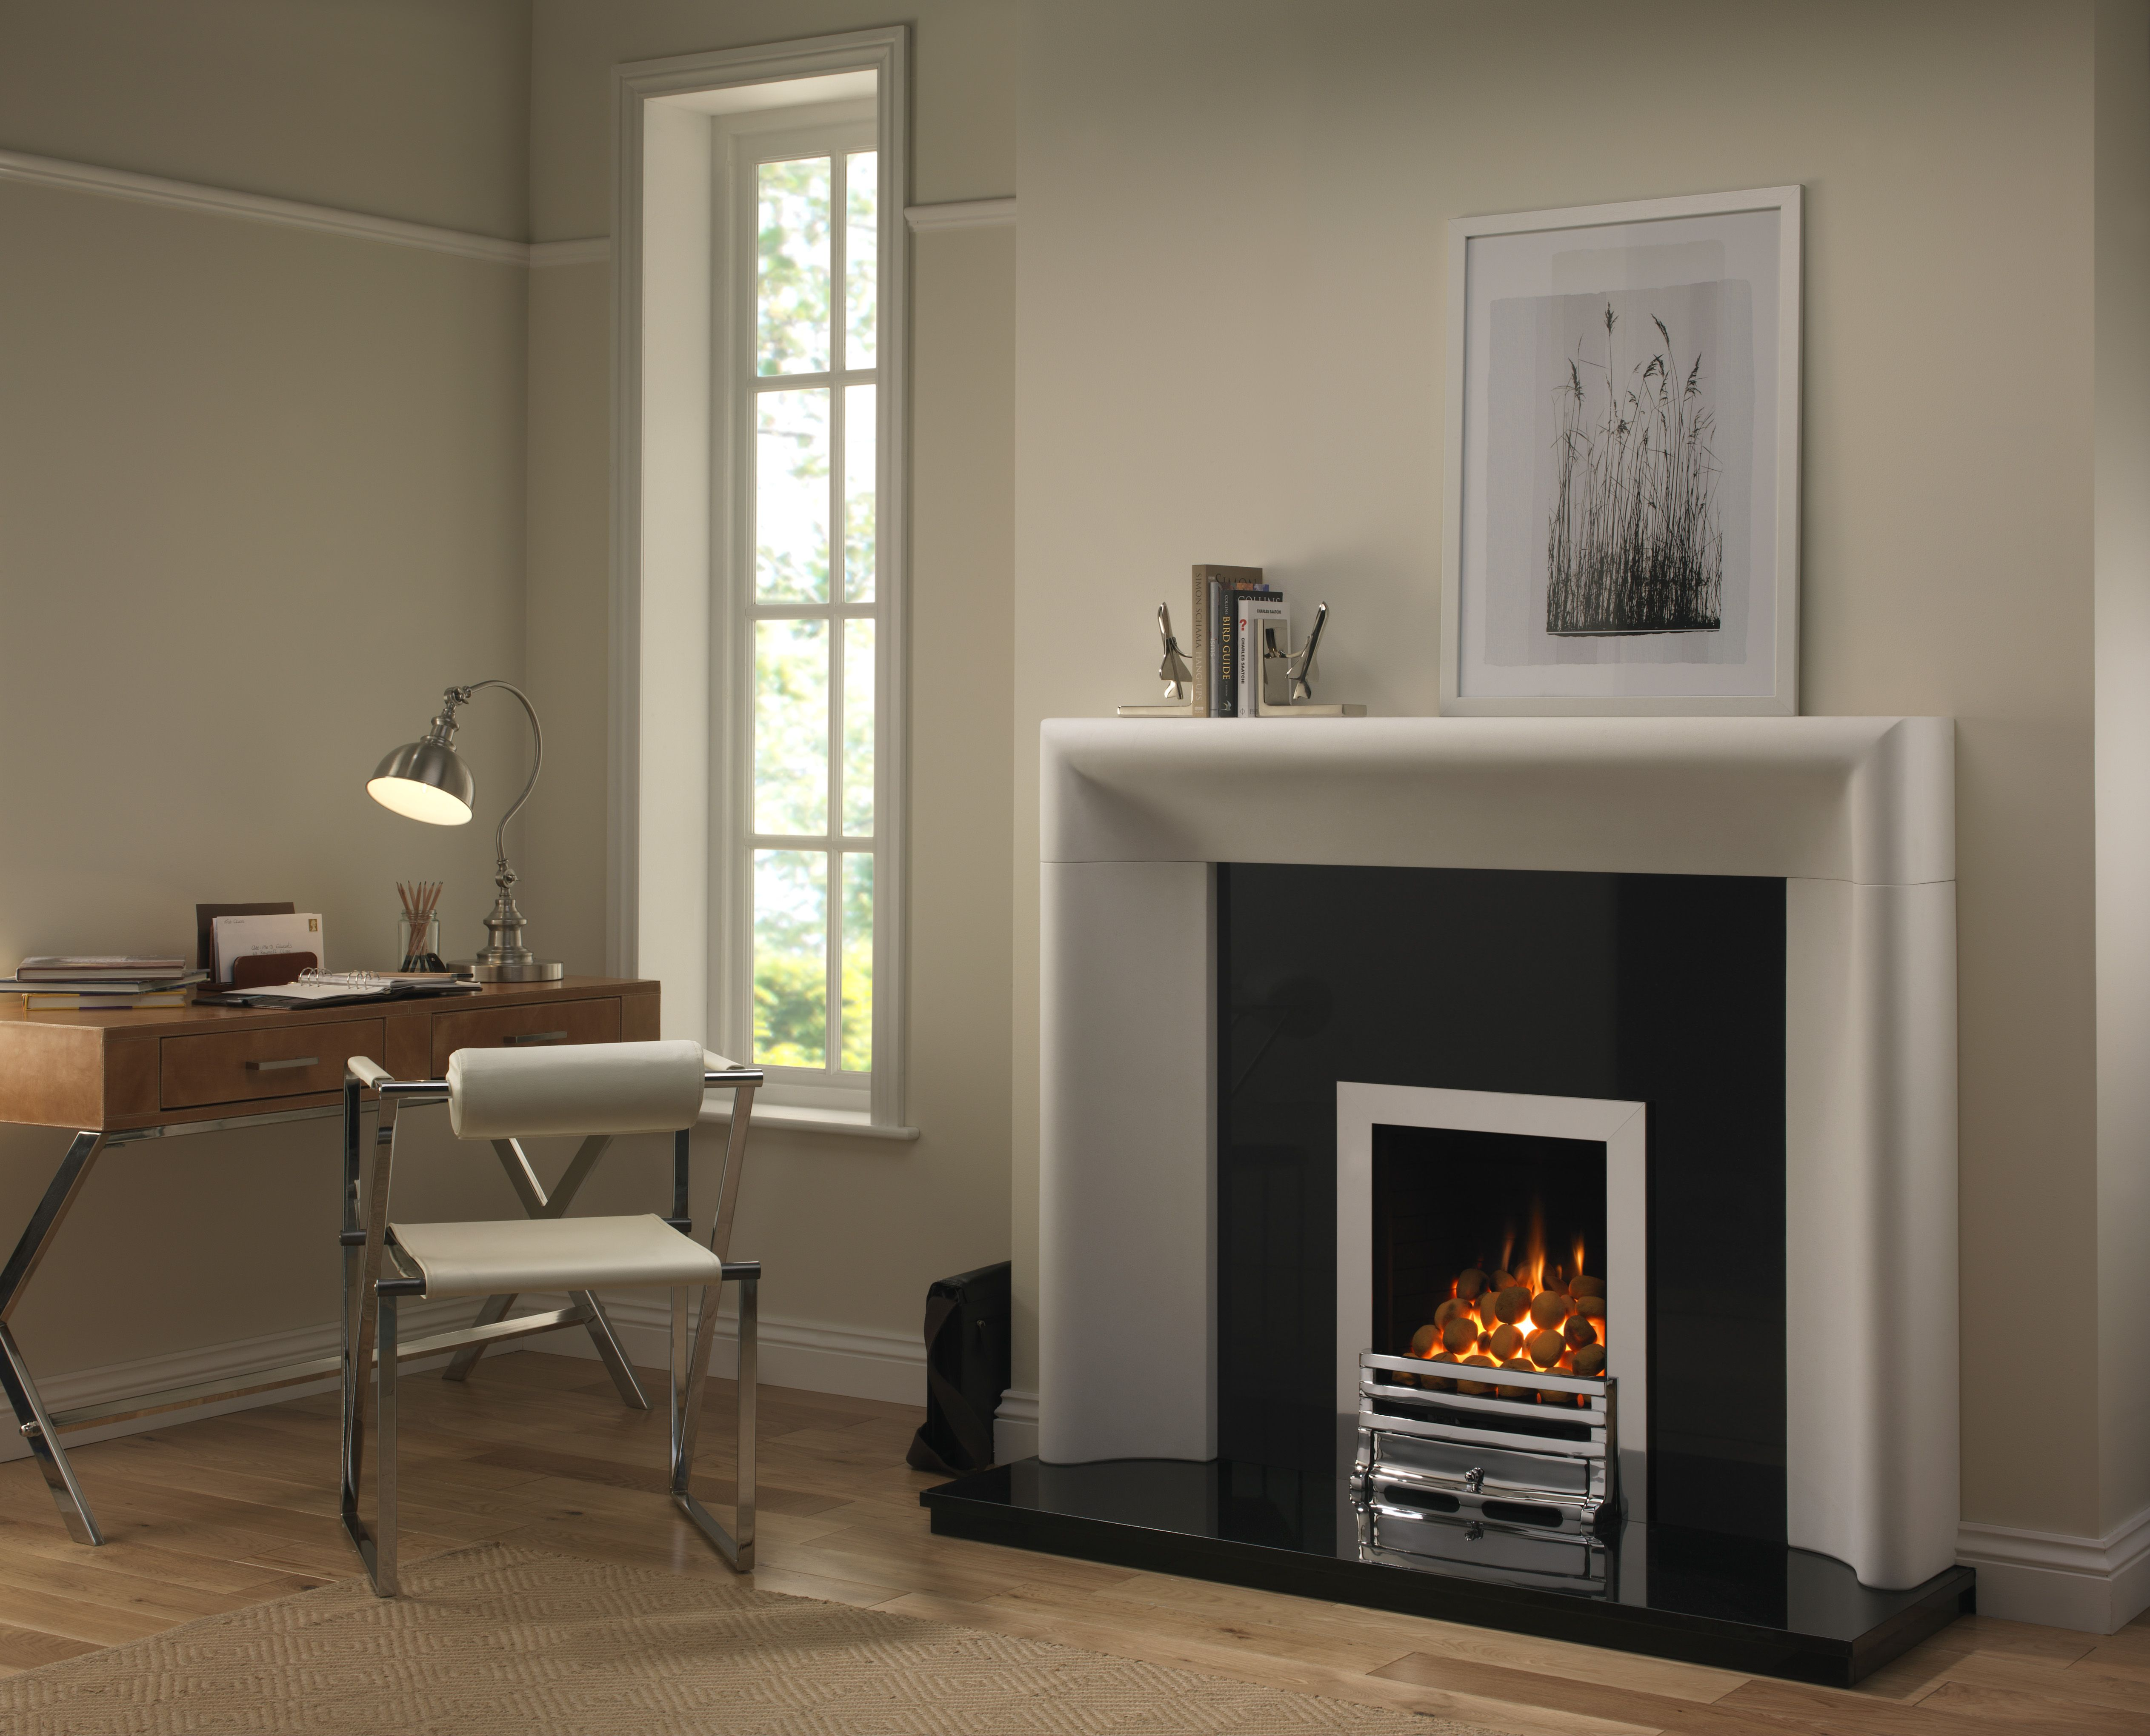 Whatley Full Depth Gas Fire with Grove Chrome Fret (With